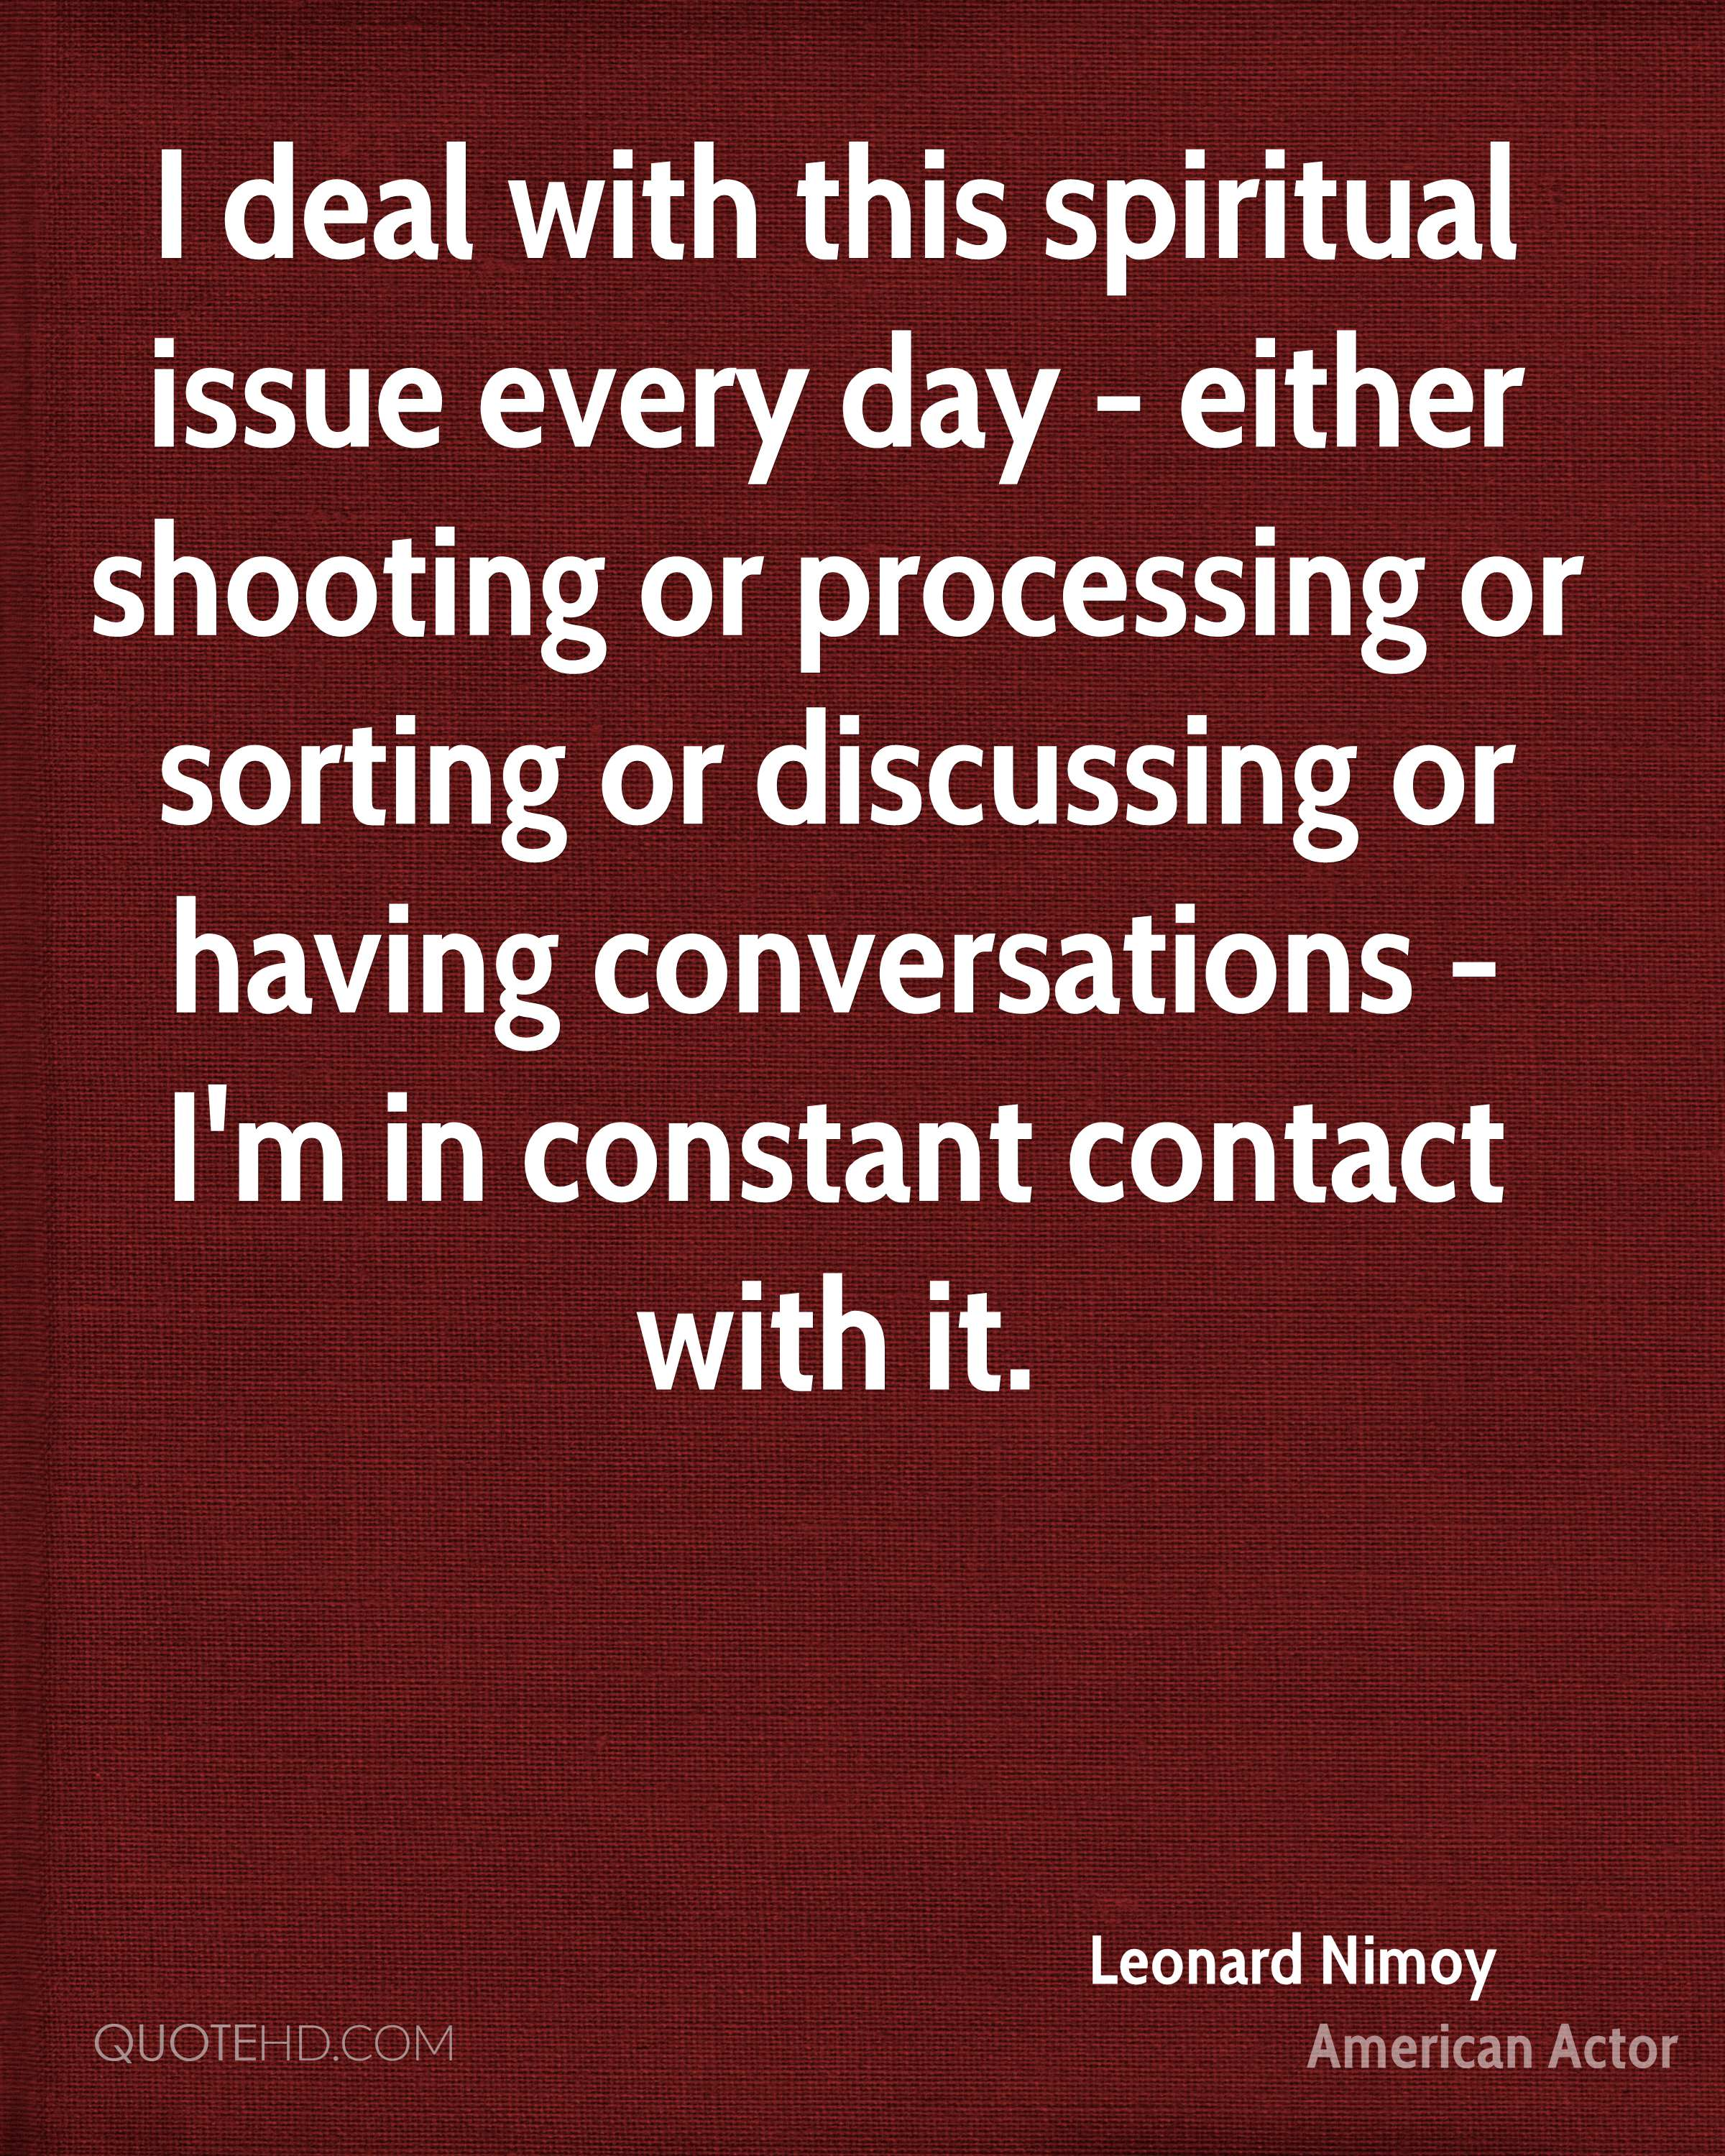 I deal with this spiritual issue every day - either shooting or processing or sorting or discussing or having conversations - I'm in constant contact with it.